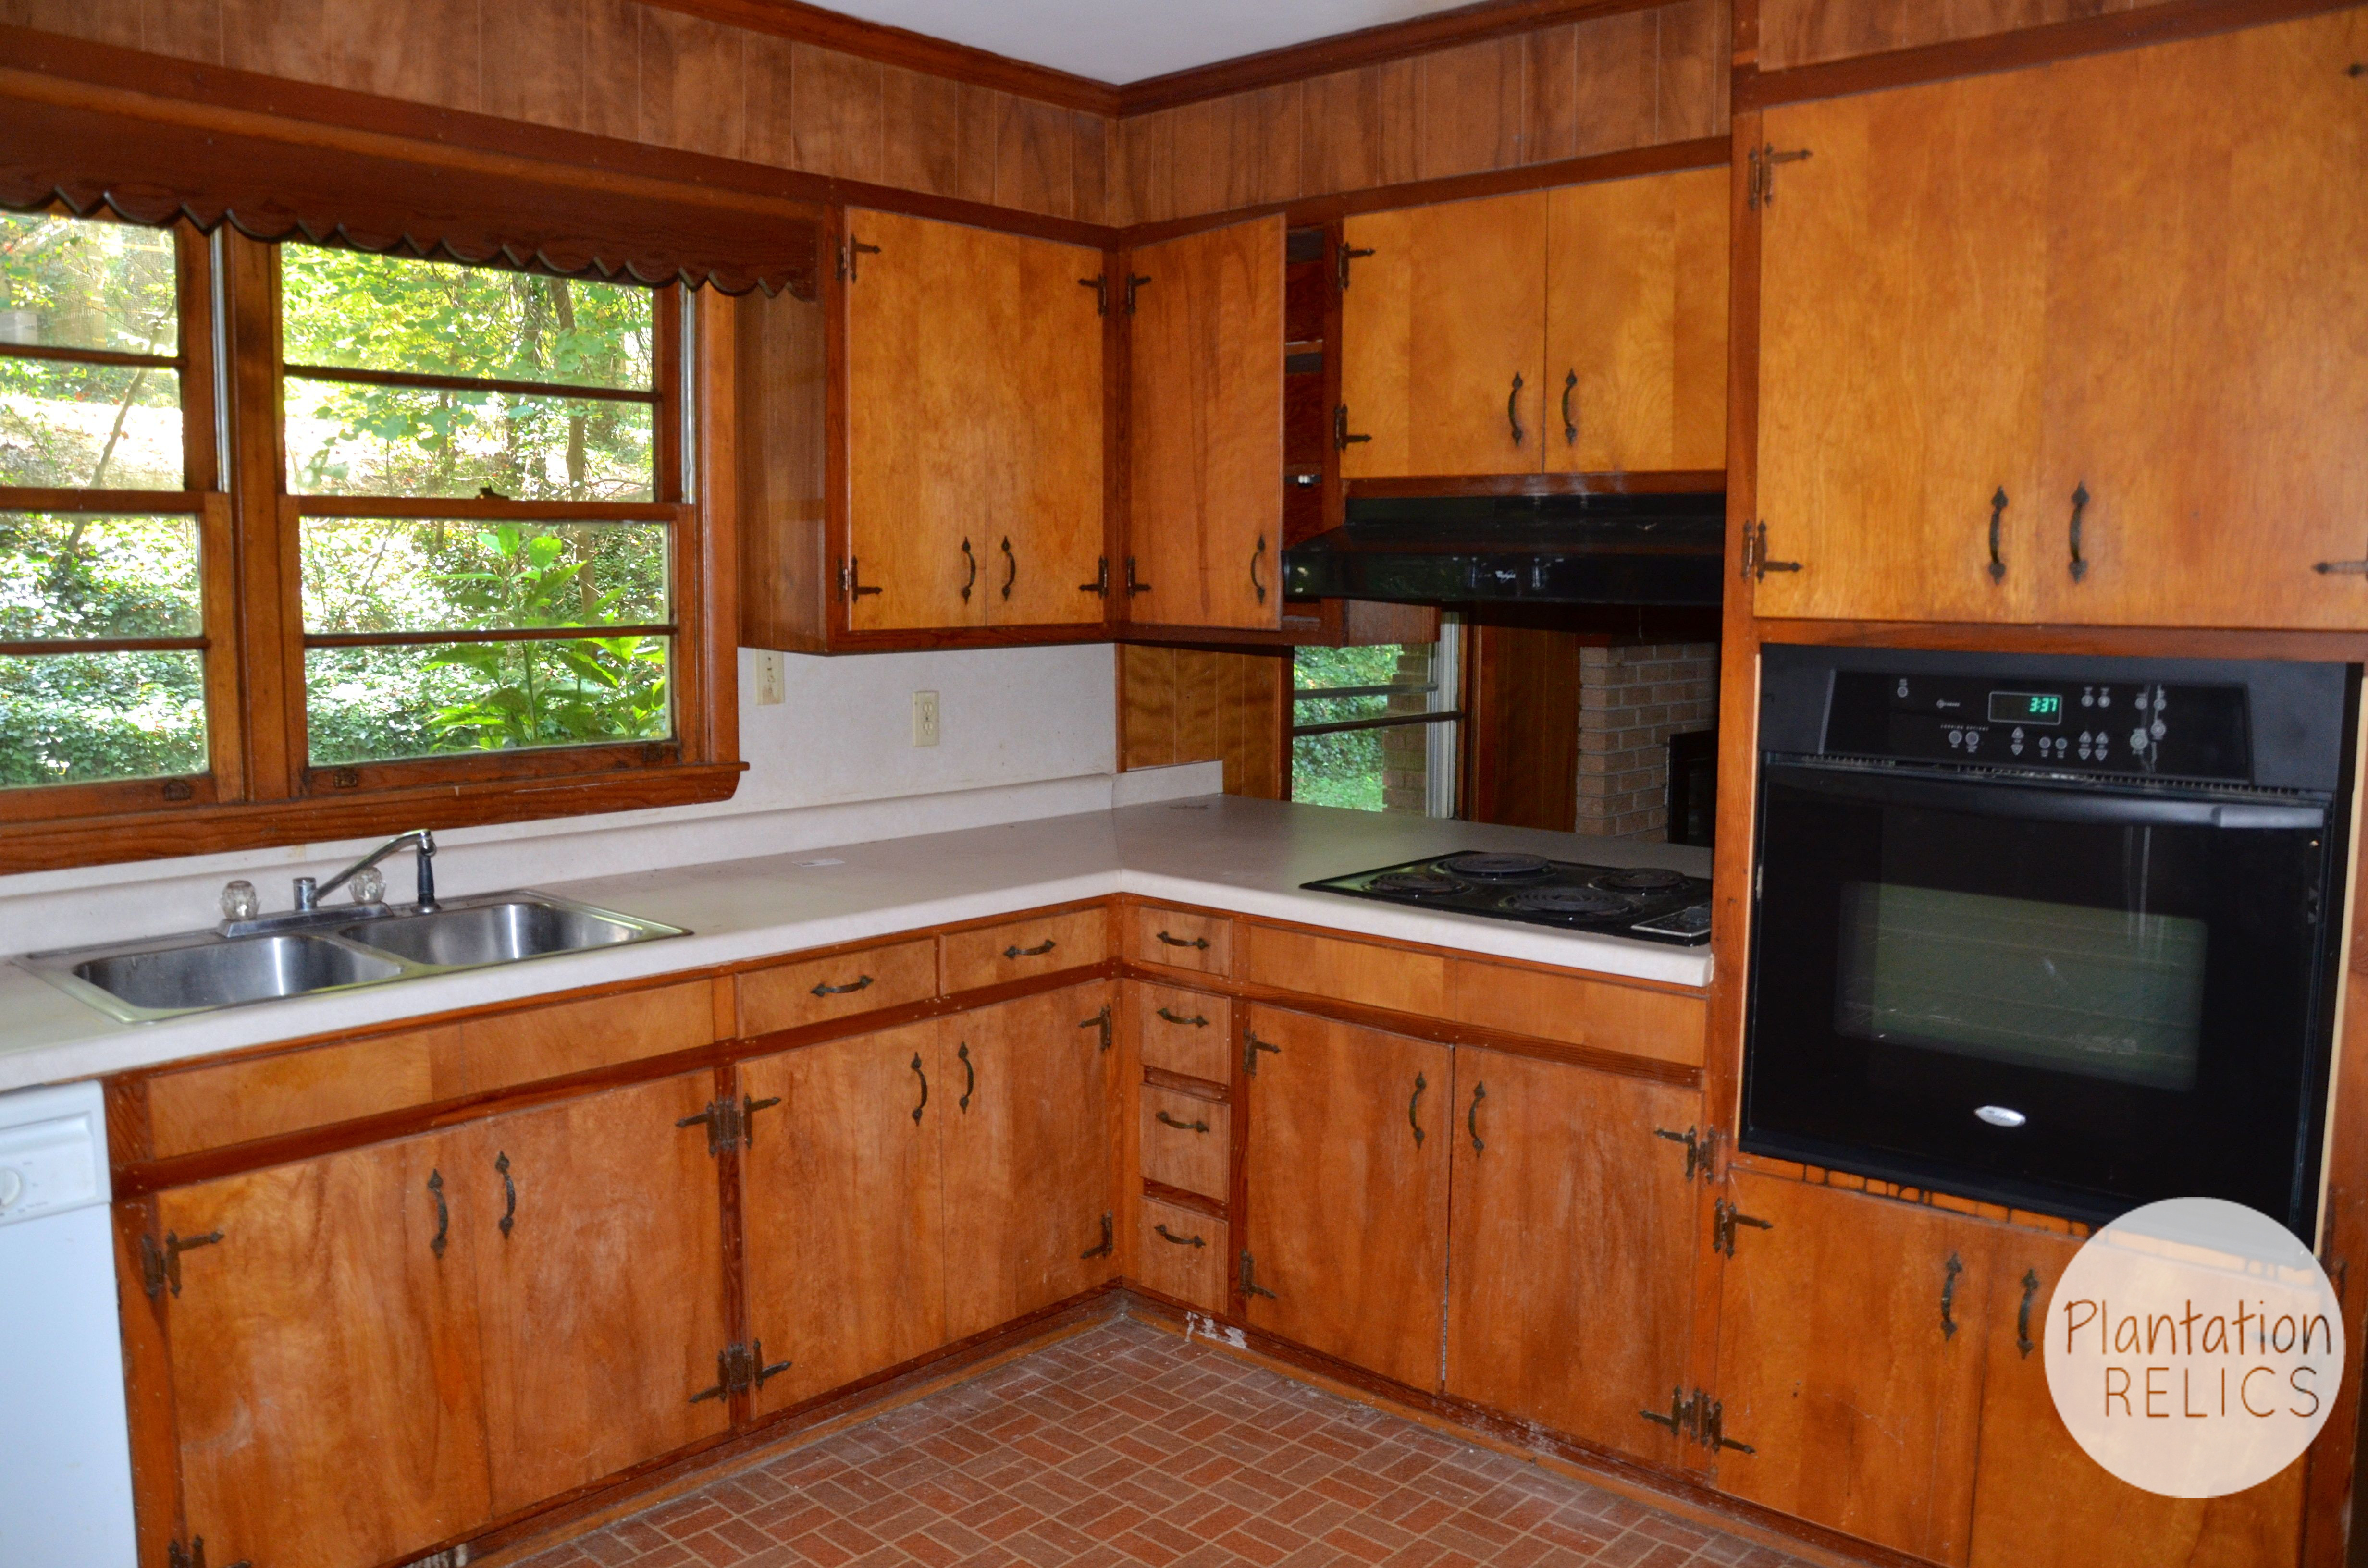 Plantation Kitchen House the kitchen after in flip house #1 - plantation relics